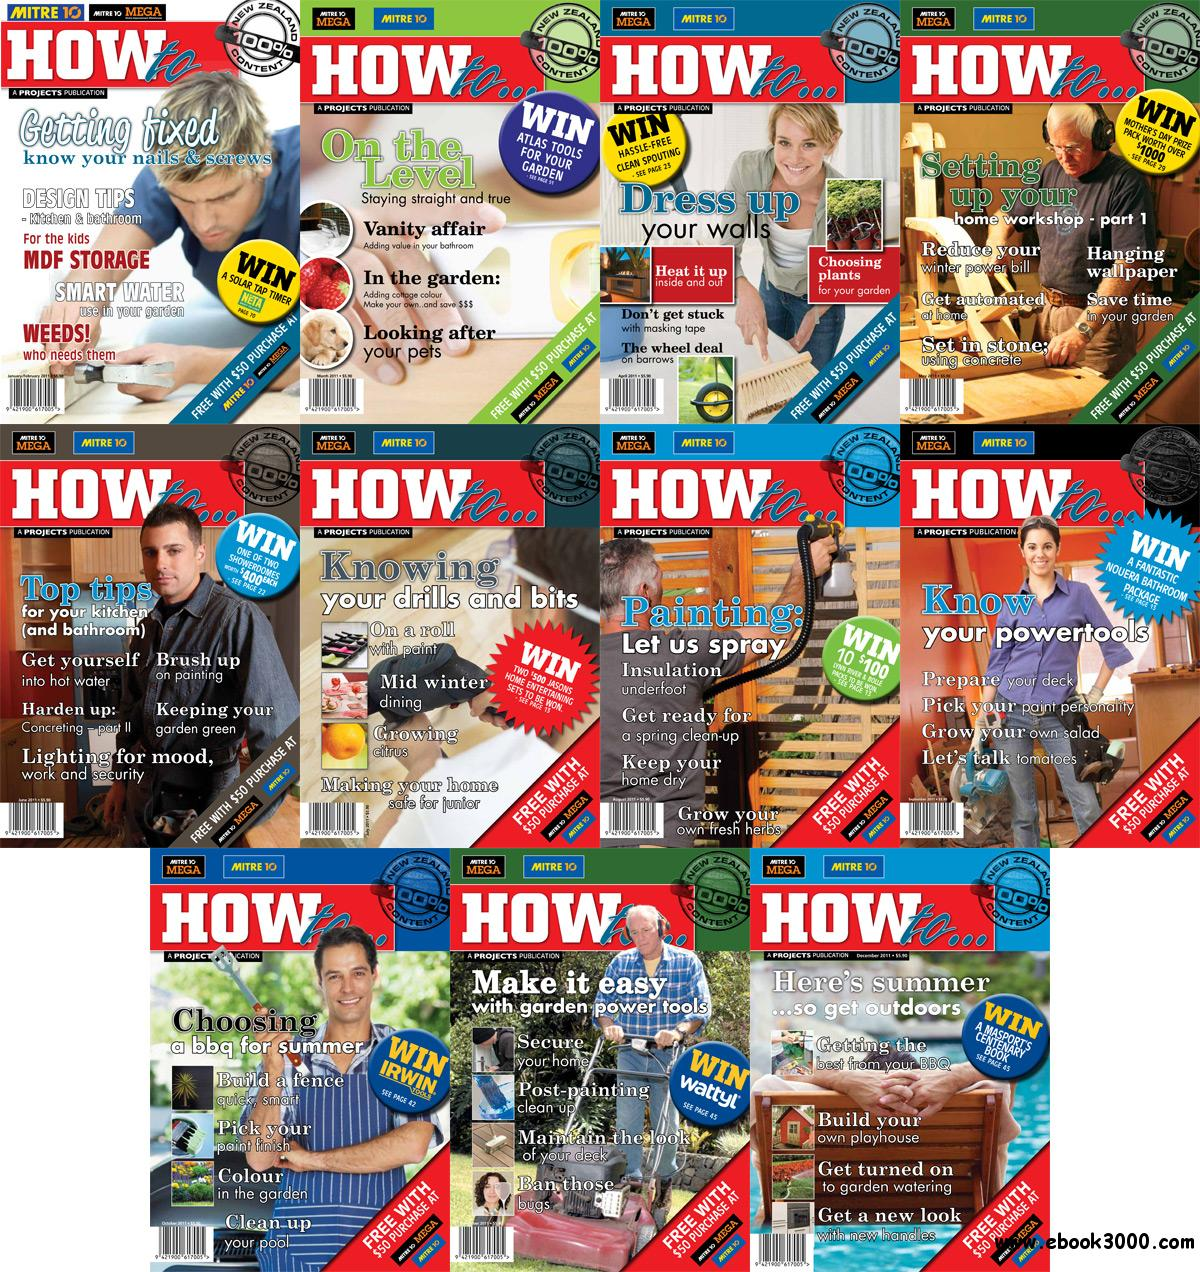 How to... Magazine 2011 Full Year Collection free download